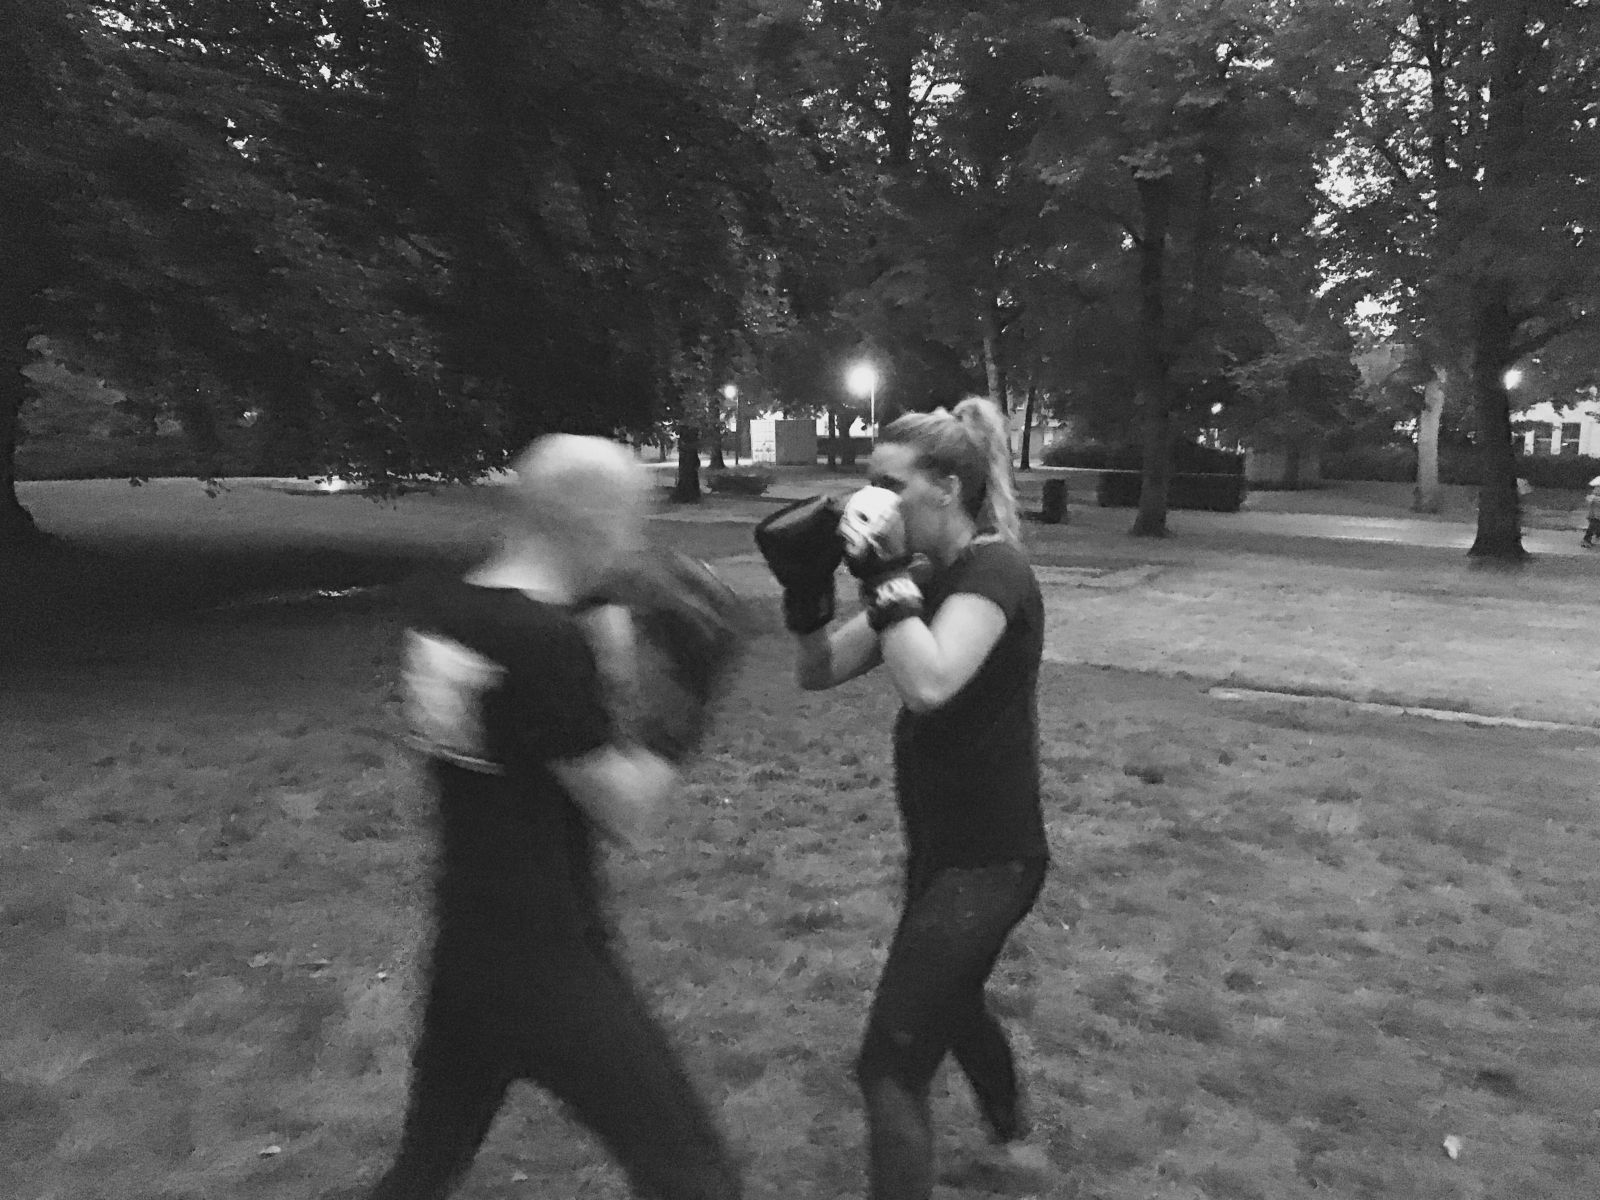 FEEL GOOD BOXING IN THE PARK IN STIJL AFGESLOTEN!